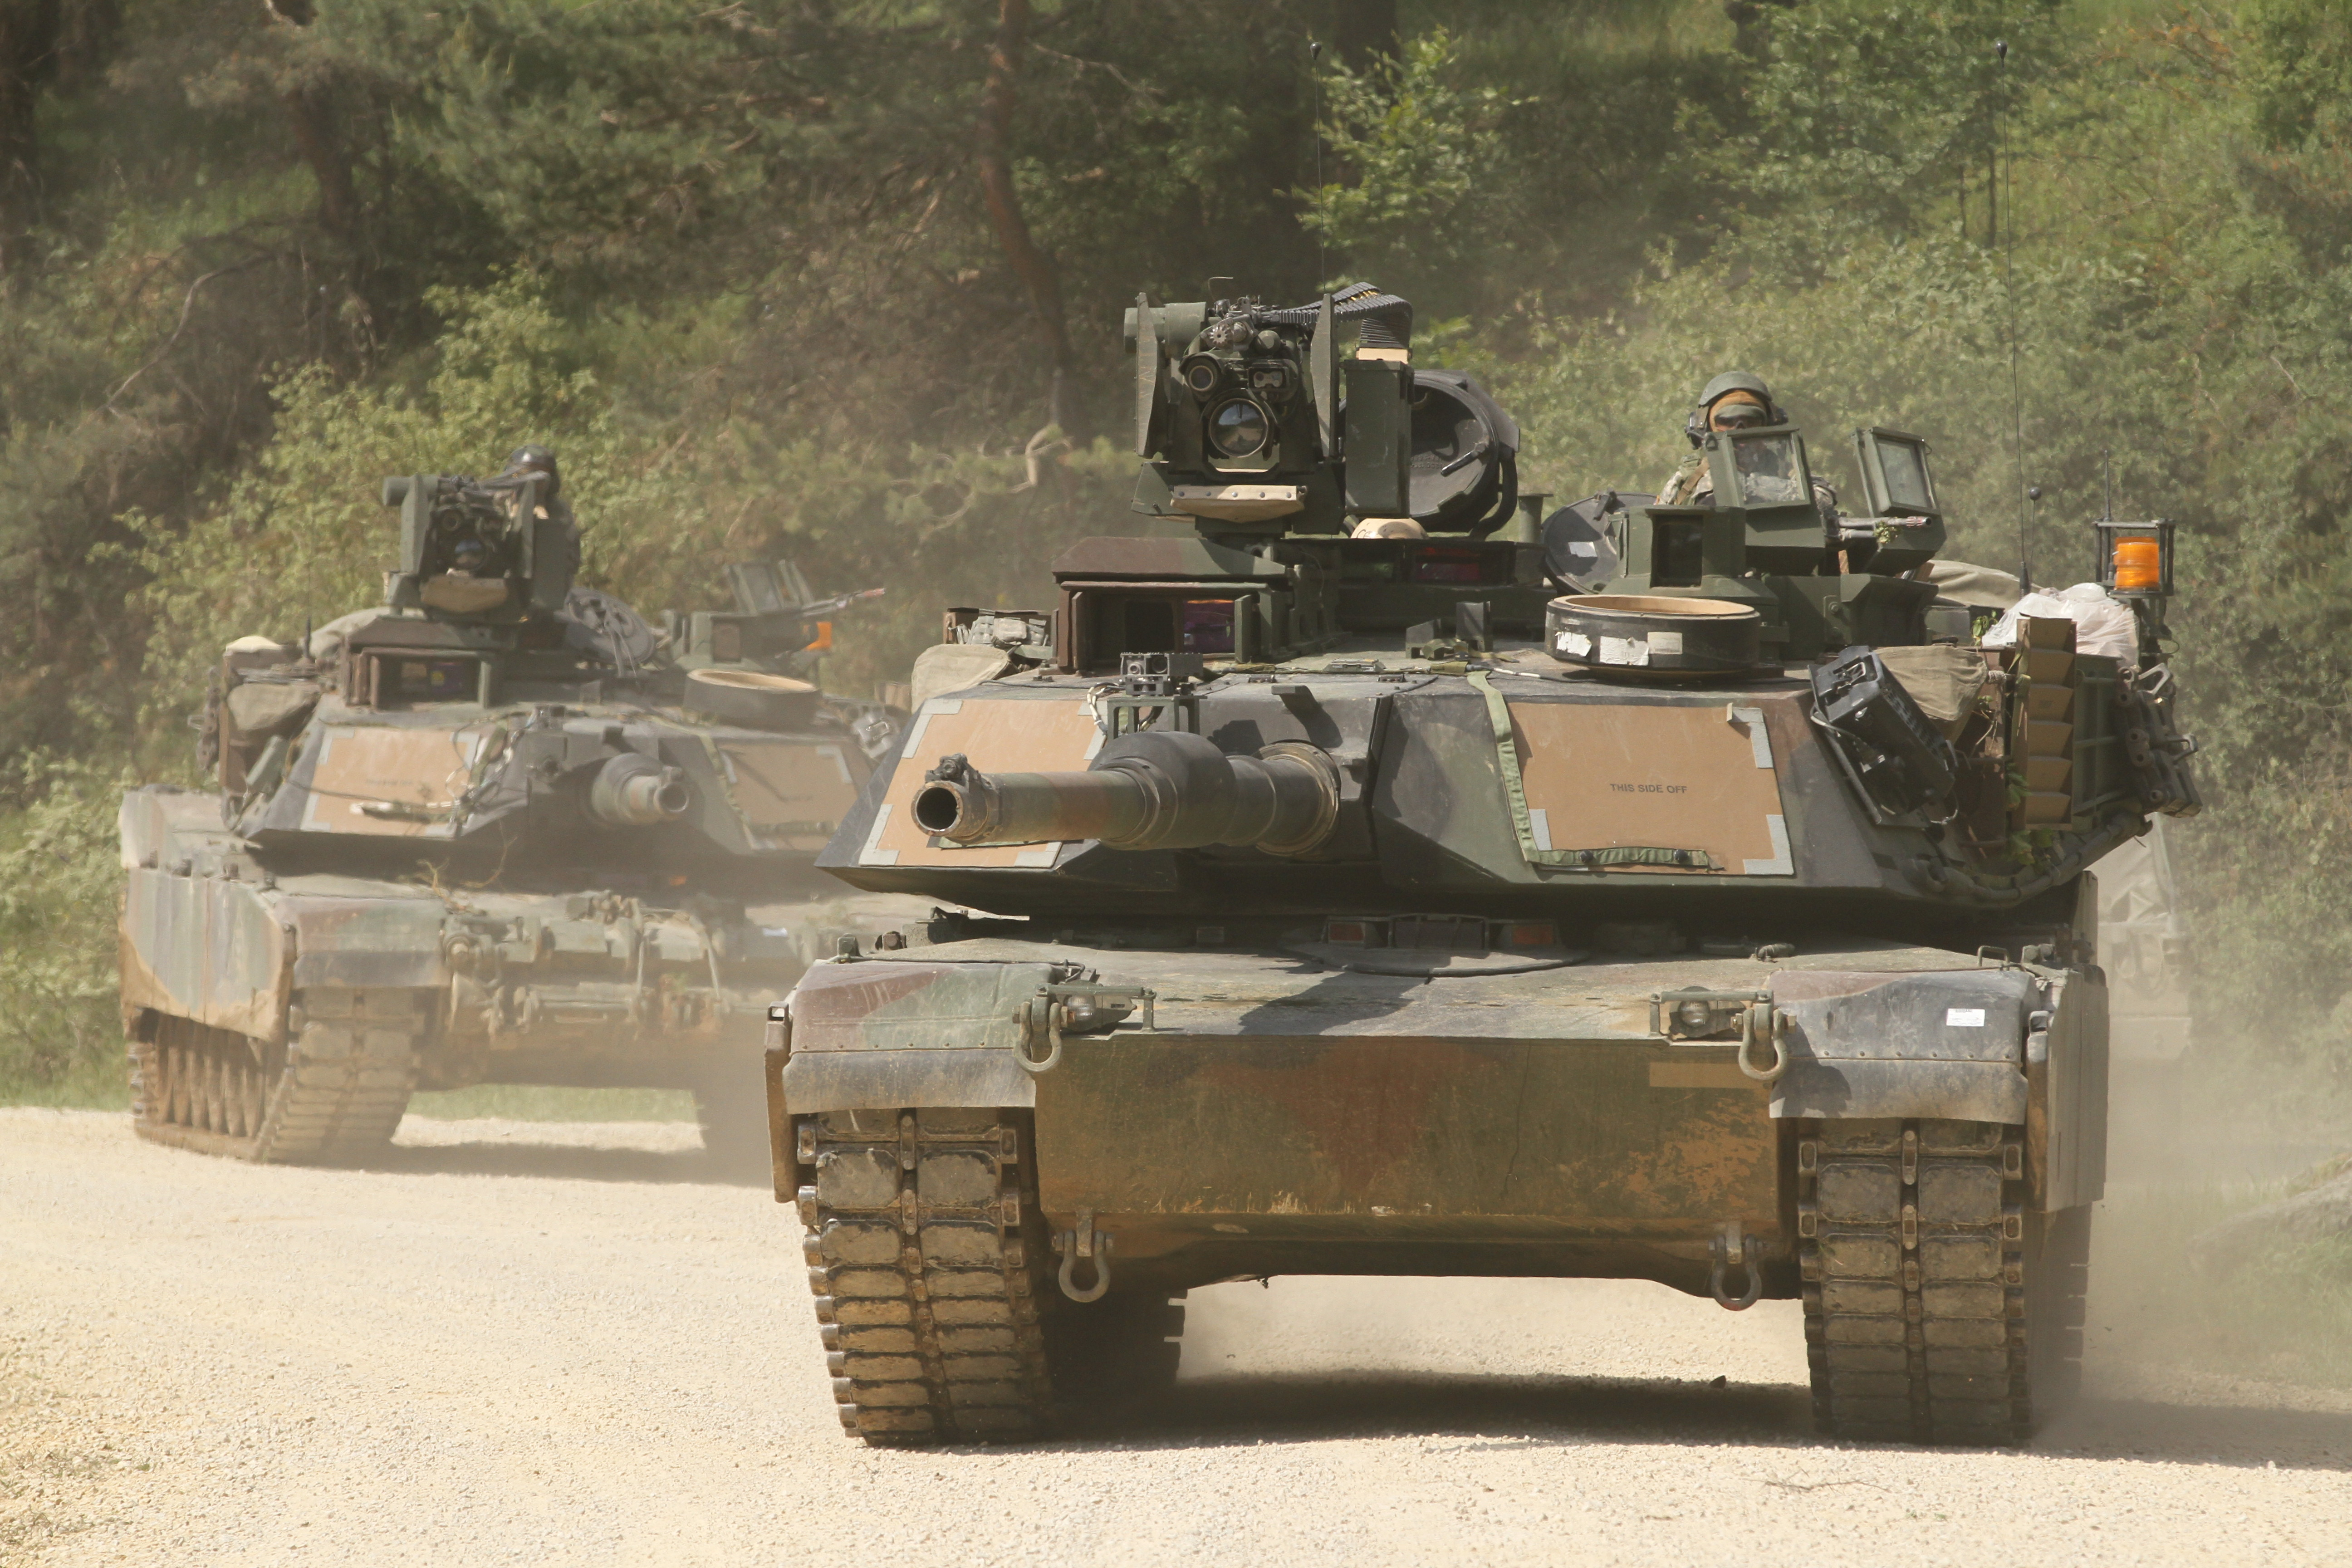 American M1A2 Abrams tanks conduct maneuvers in Germany during European exercises.